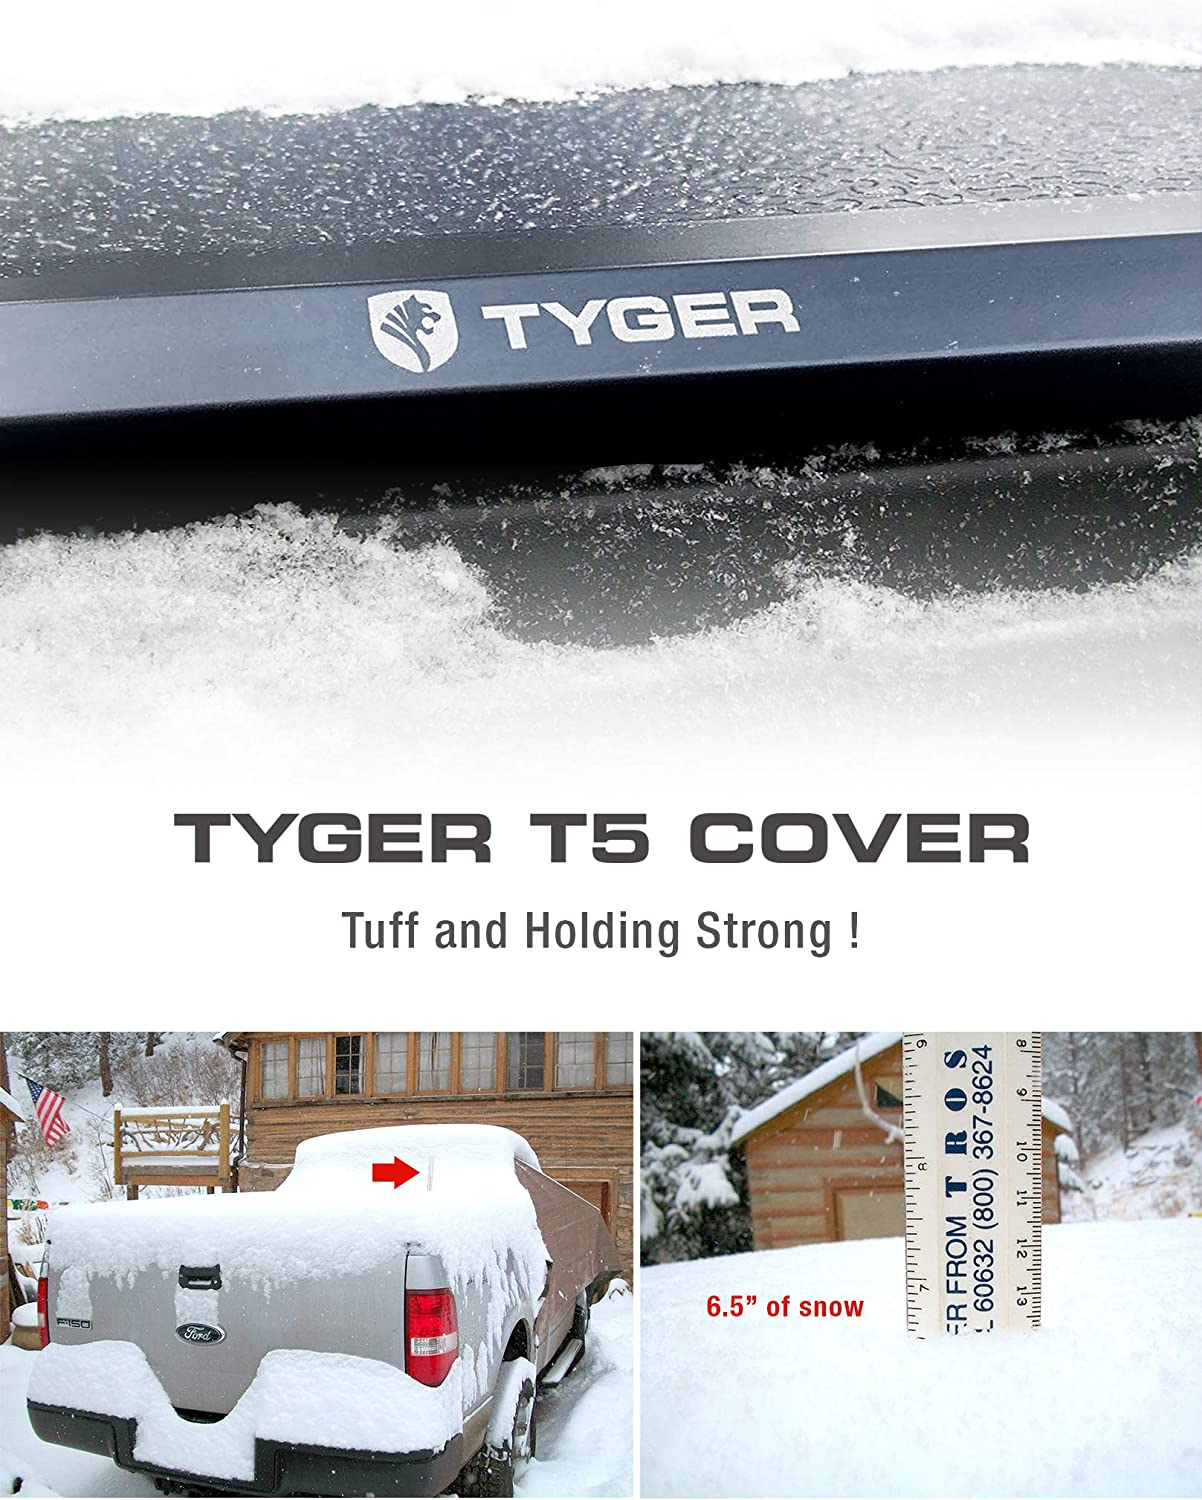 1 Tyger Auto TG-BC5T1032 Black 1 T5 Alloy Hard Top Tonneau Cover for 2007-2013 Toyota Tundra Fleet Side 5.5 Bed with or Without The Deck Rail System|TG-BC5T1032 Non-Carb Compliant